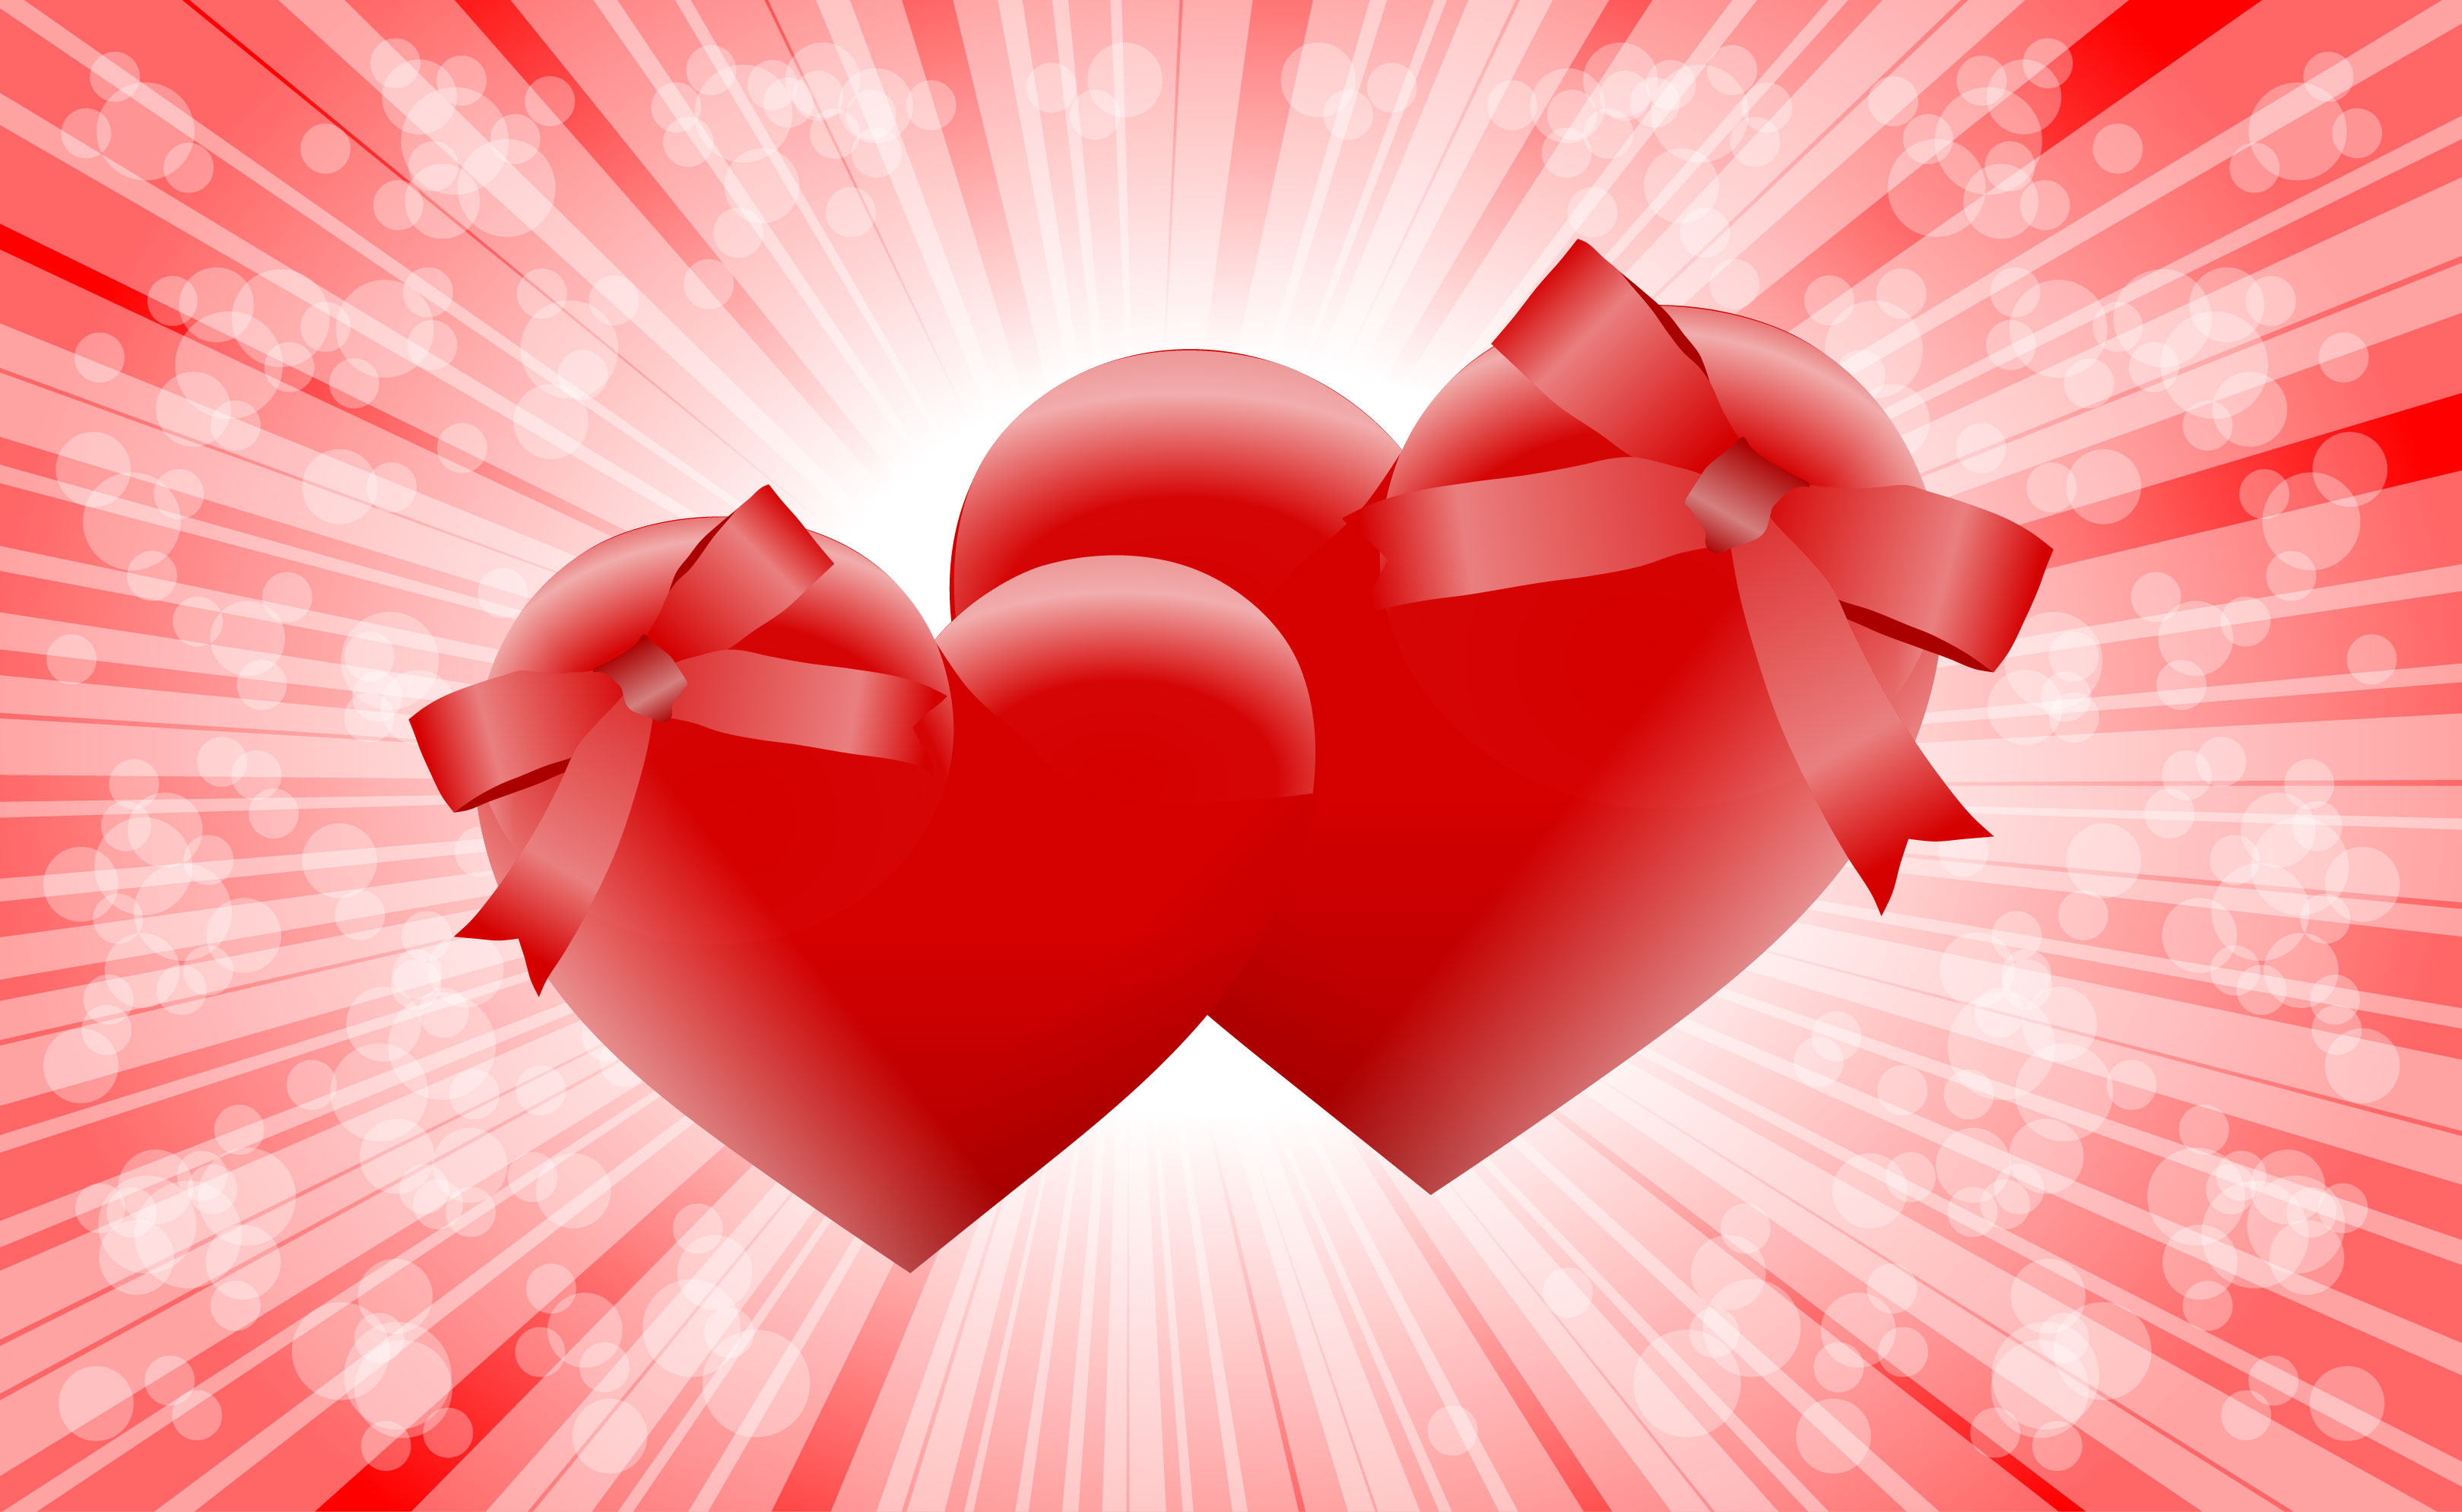 Elegant Valentine Background Graphic 03 Free Download